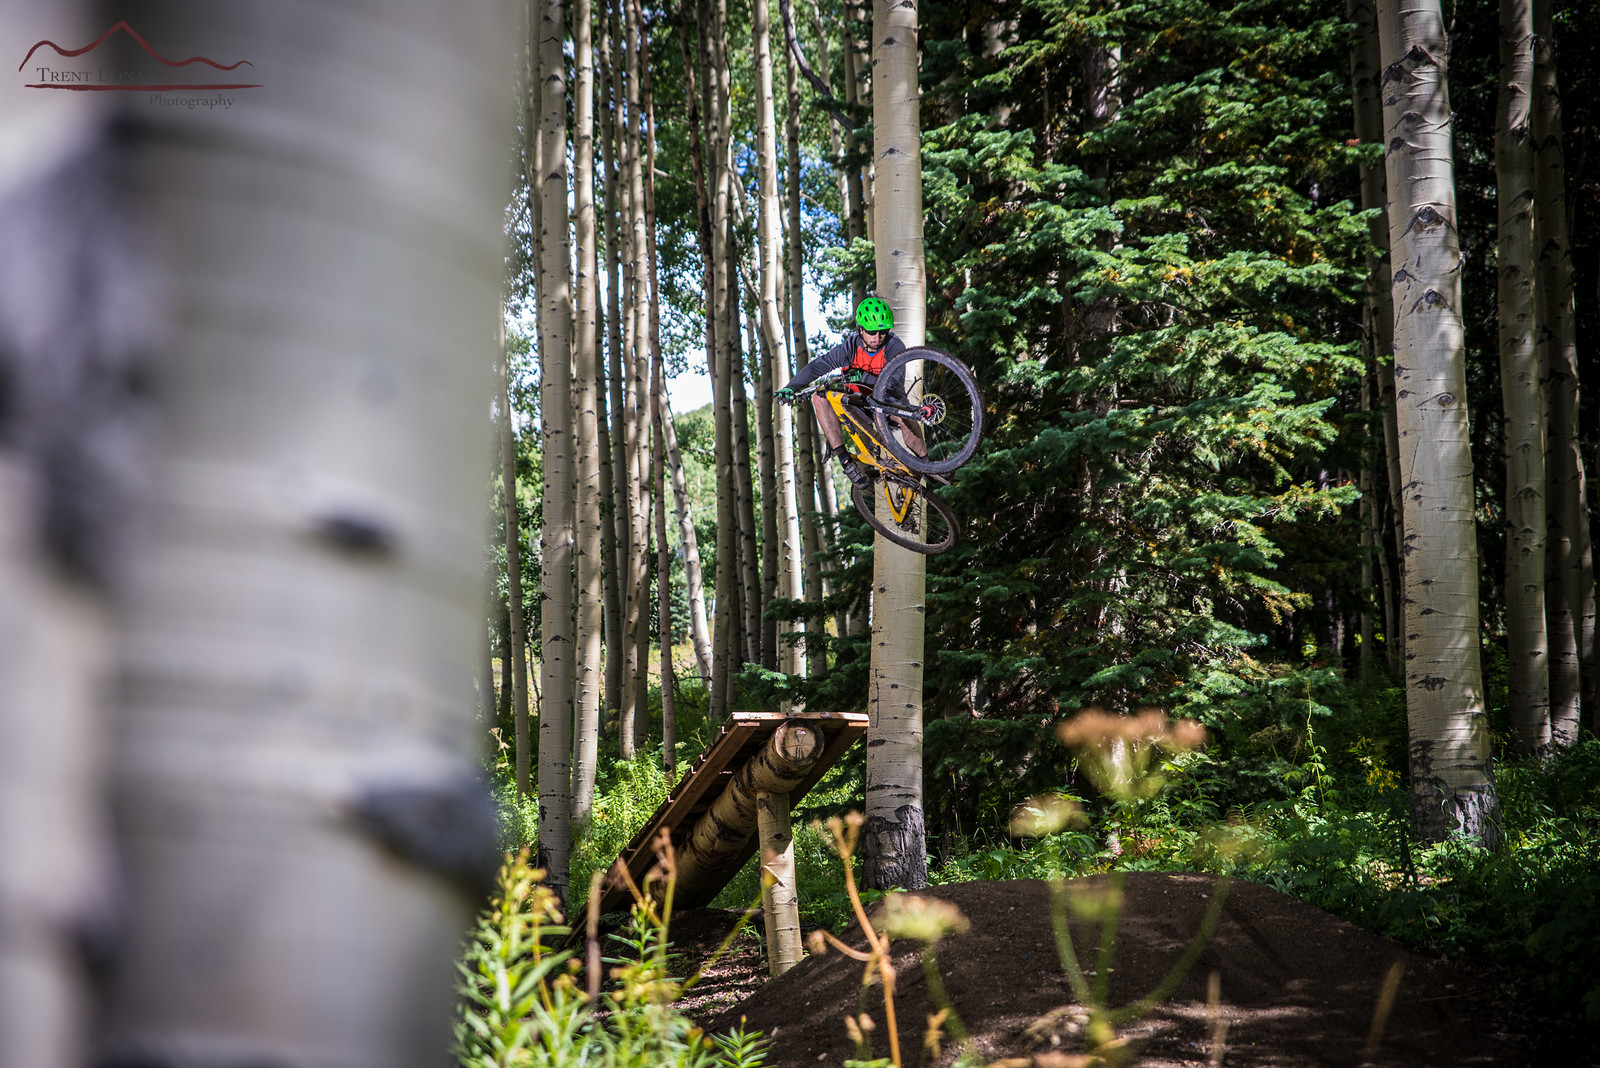 Special Log - Evolution Bike Park - Mountain Biking Pictures - Vital MTB